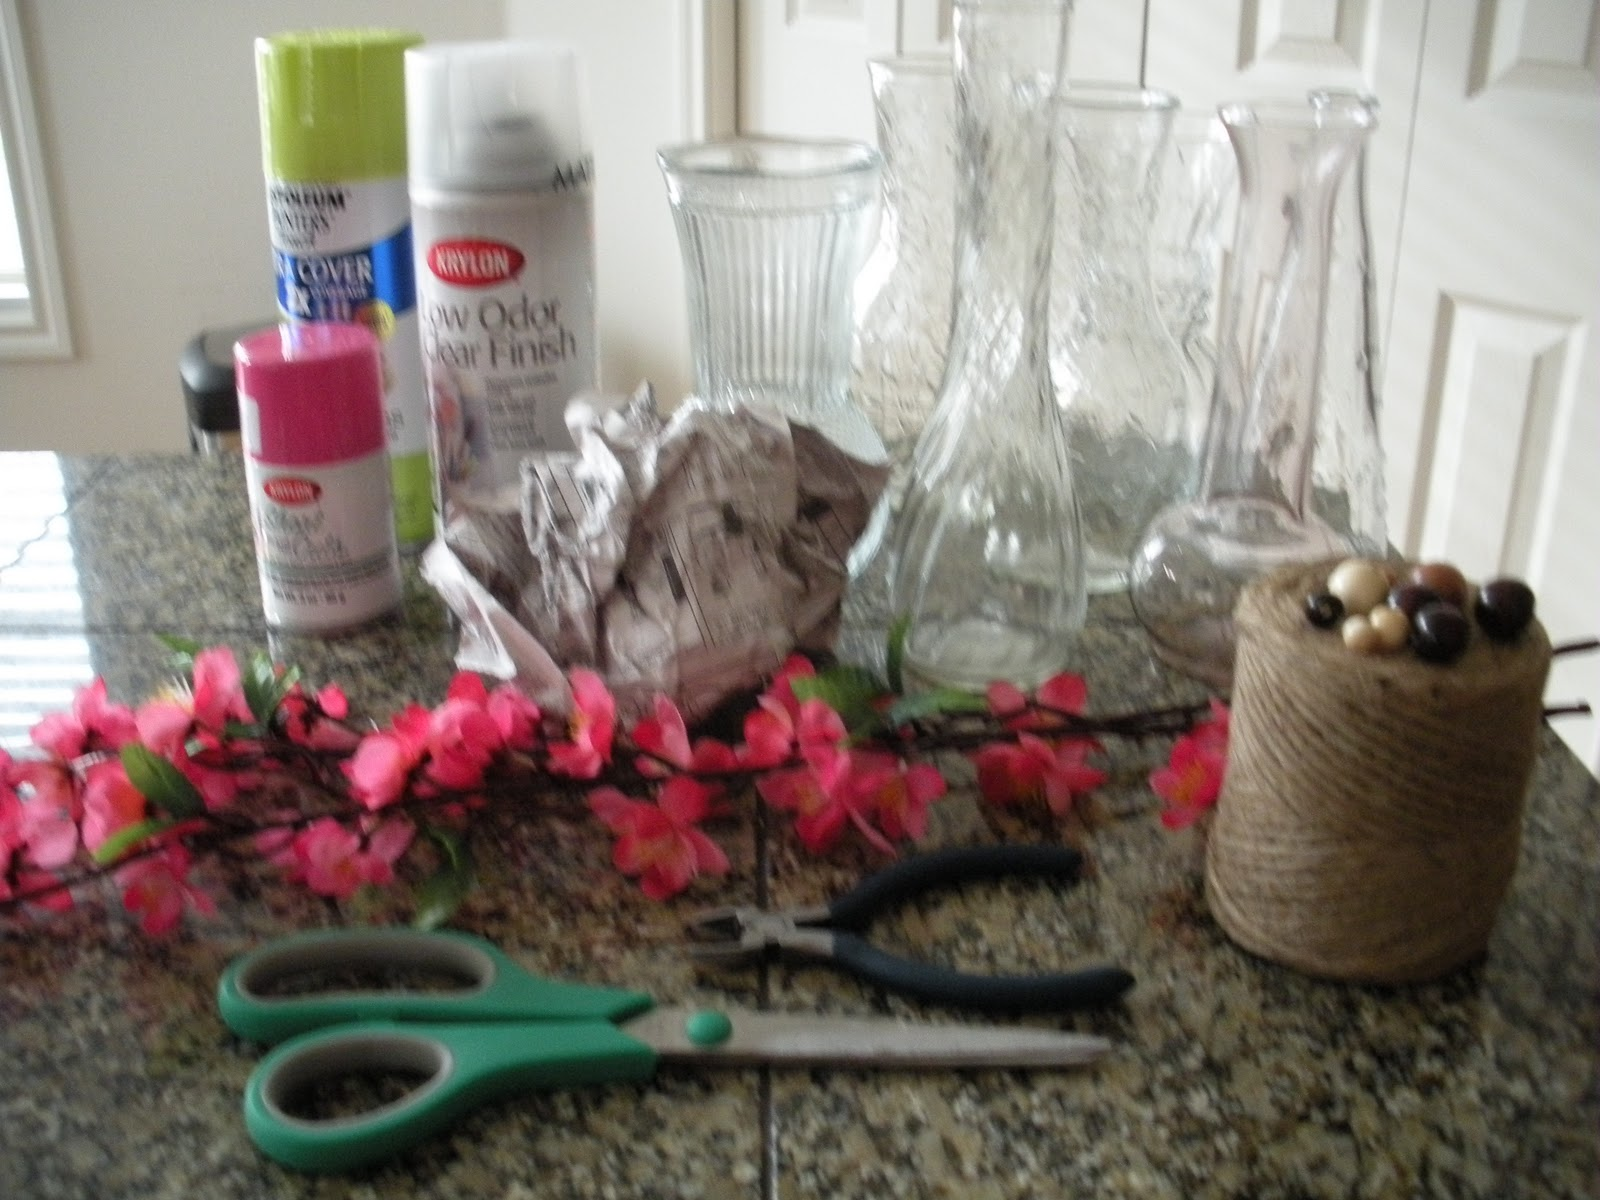 365 Crafts for 365 days: Spray Painted Vases